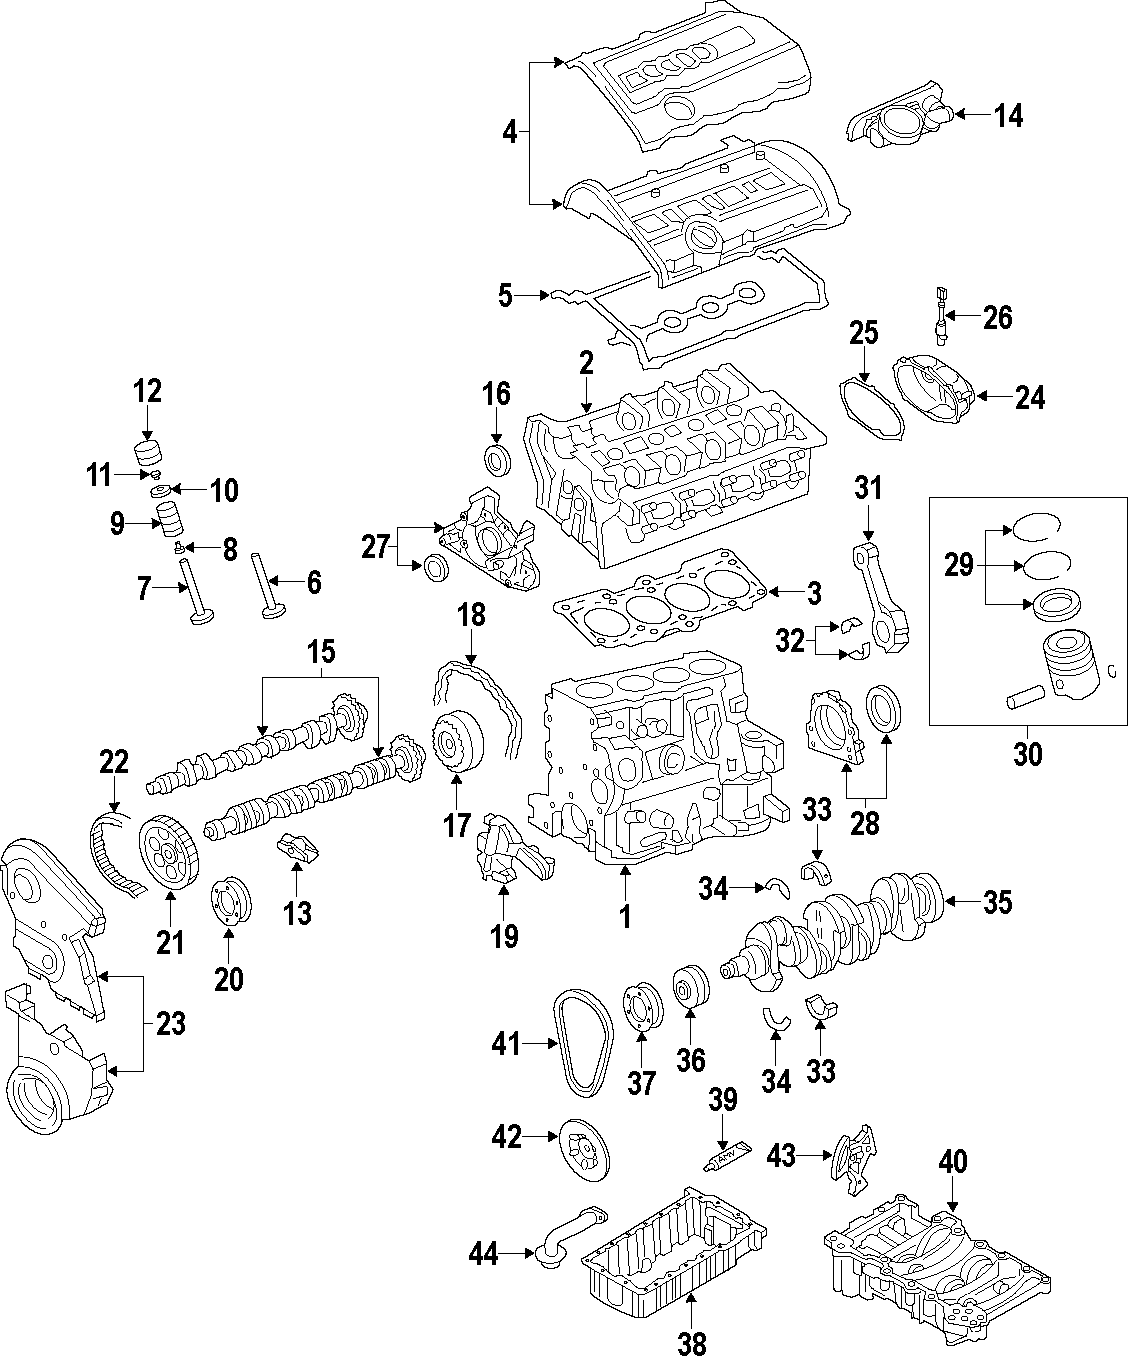 Volkswagen Eos Drive Chain Engine Timing Chain Oil